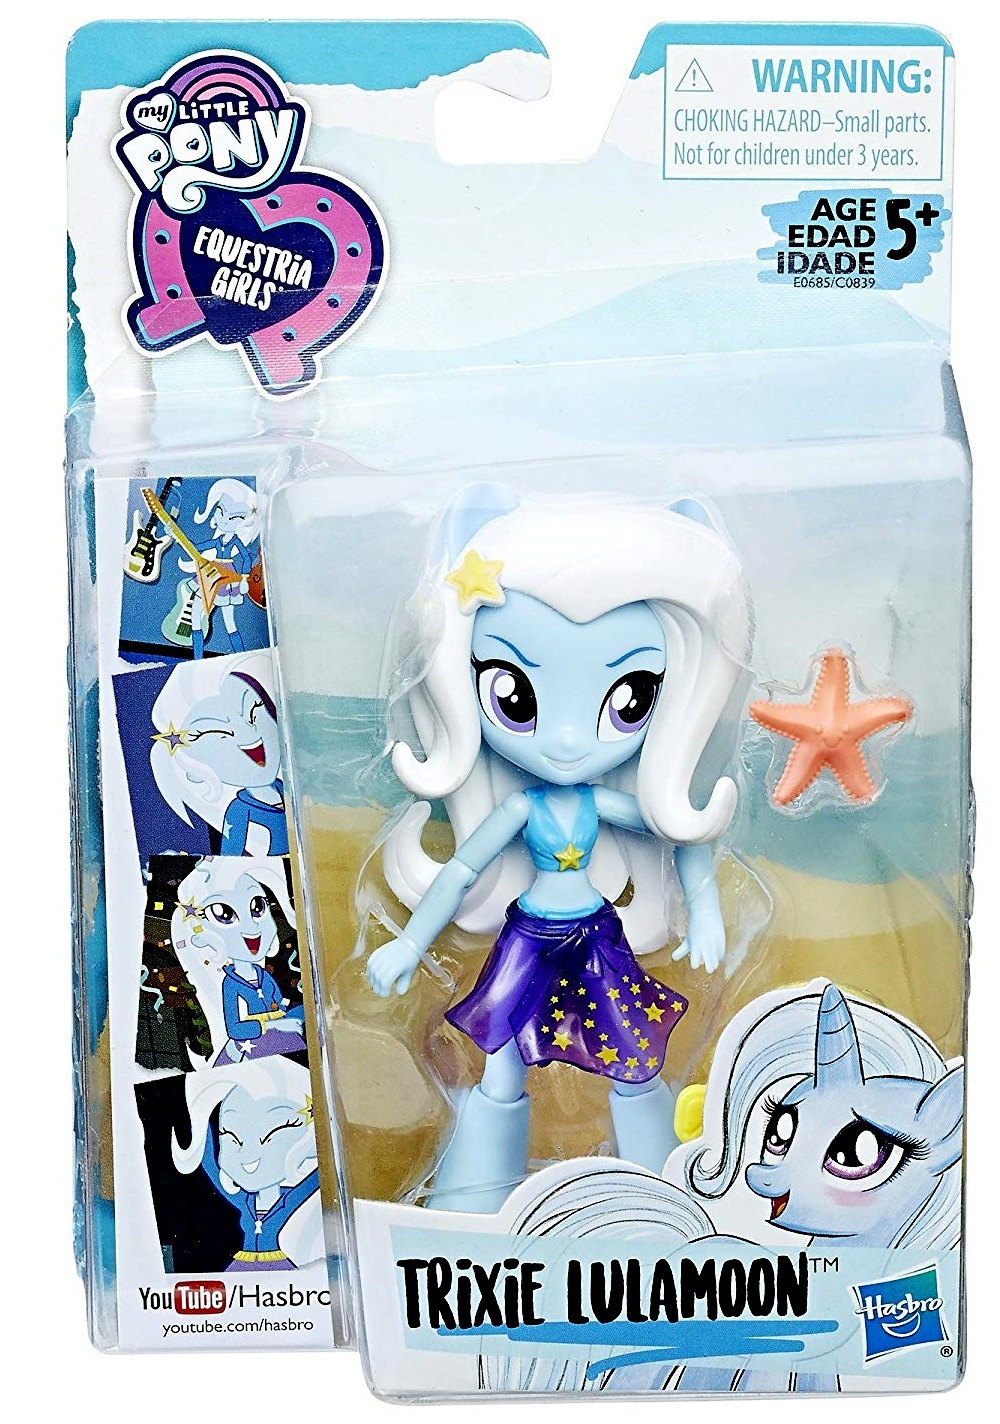 My Little Pony Equestria Girls minis Trixie Lulamoon Doll Beach Collection 2017